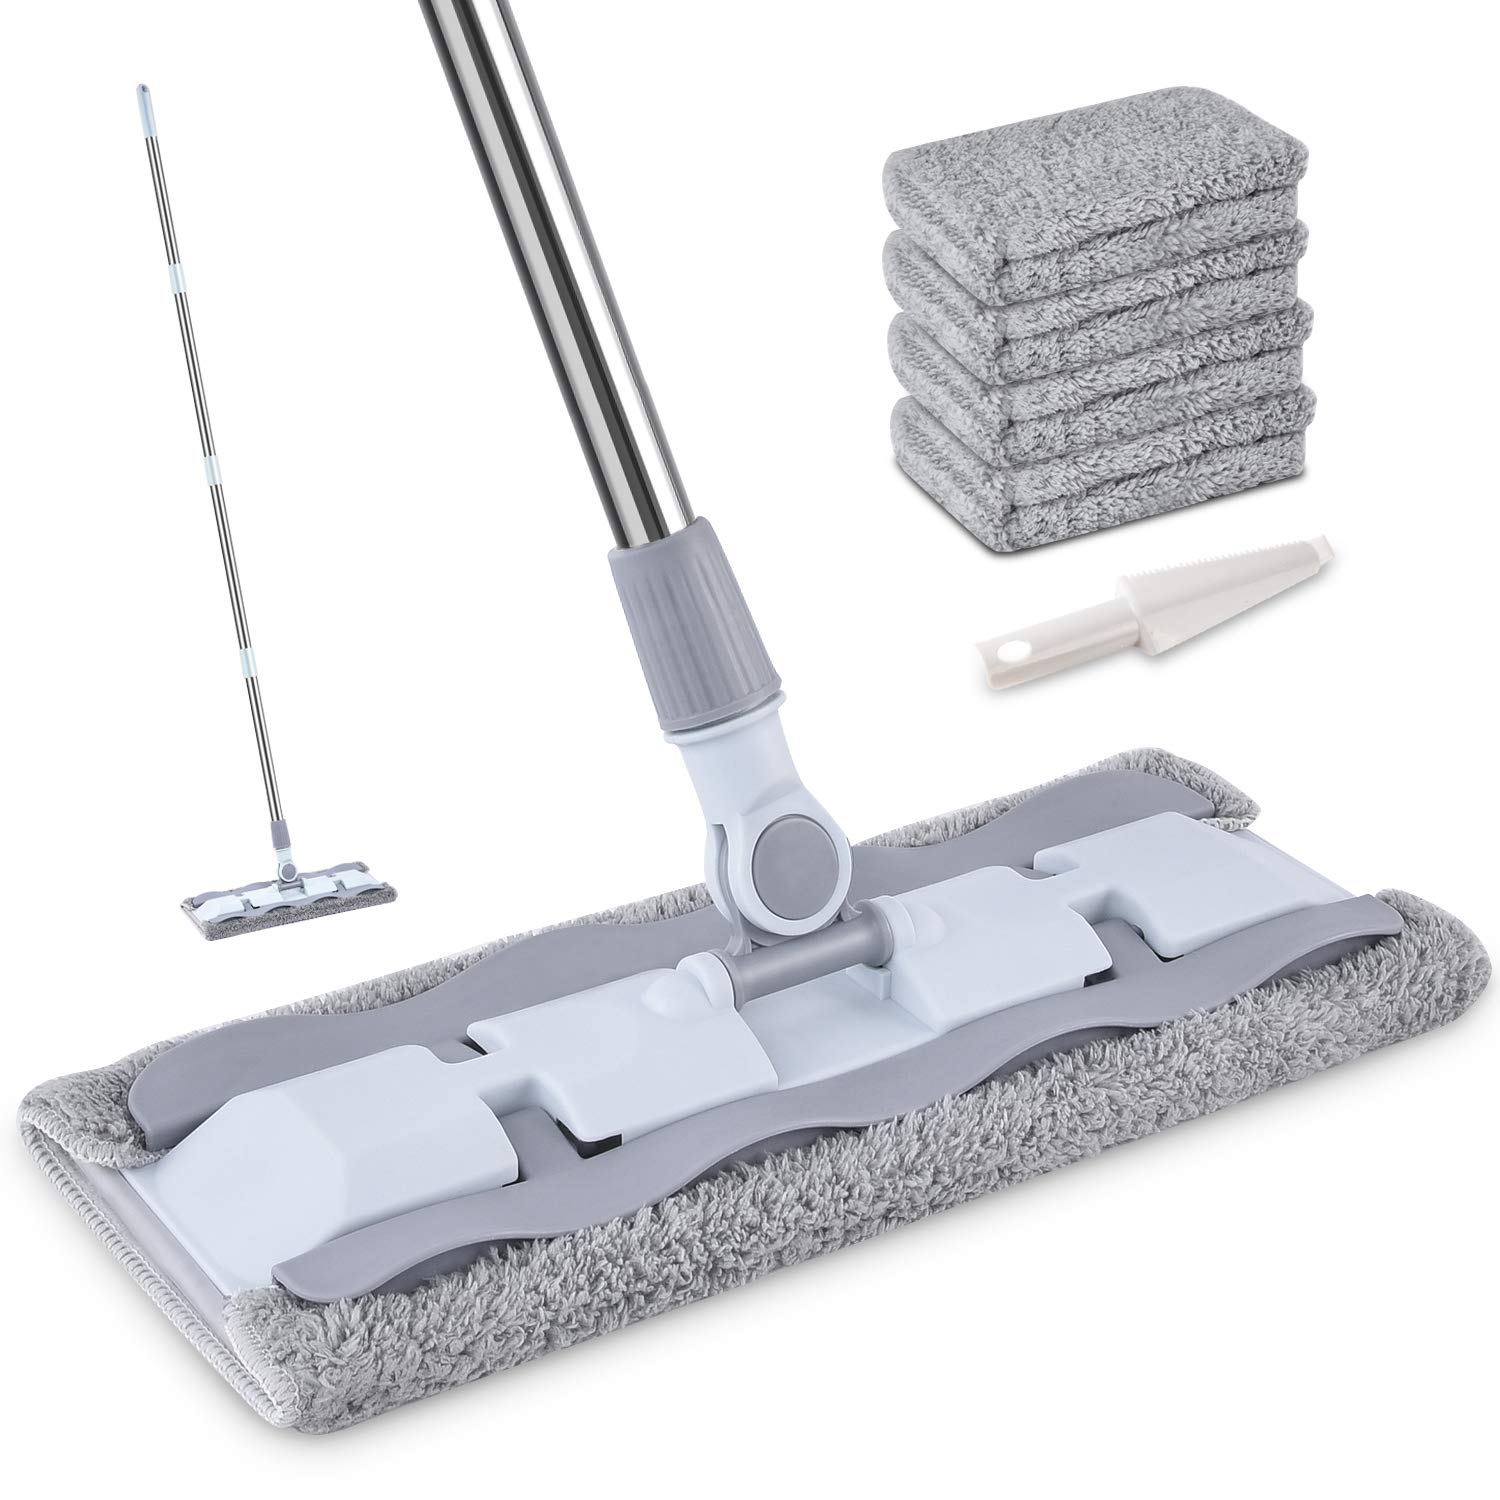 24 Microfiber Mop with 5 Pcs Reusable Mop Pads for Hardwood Durable Aluminum Flat Dust Mop with Long Handle and Scraper Cleaning Tools